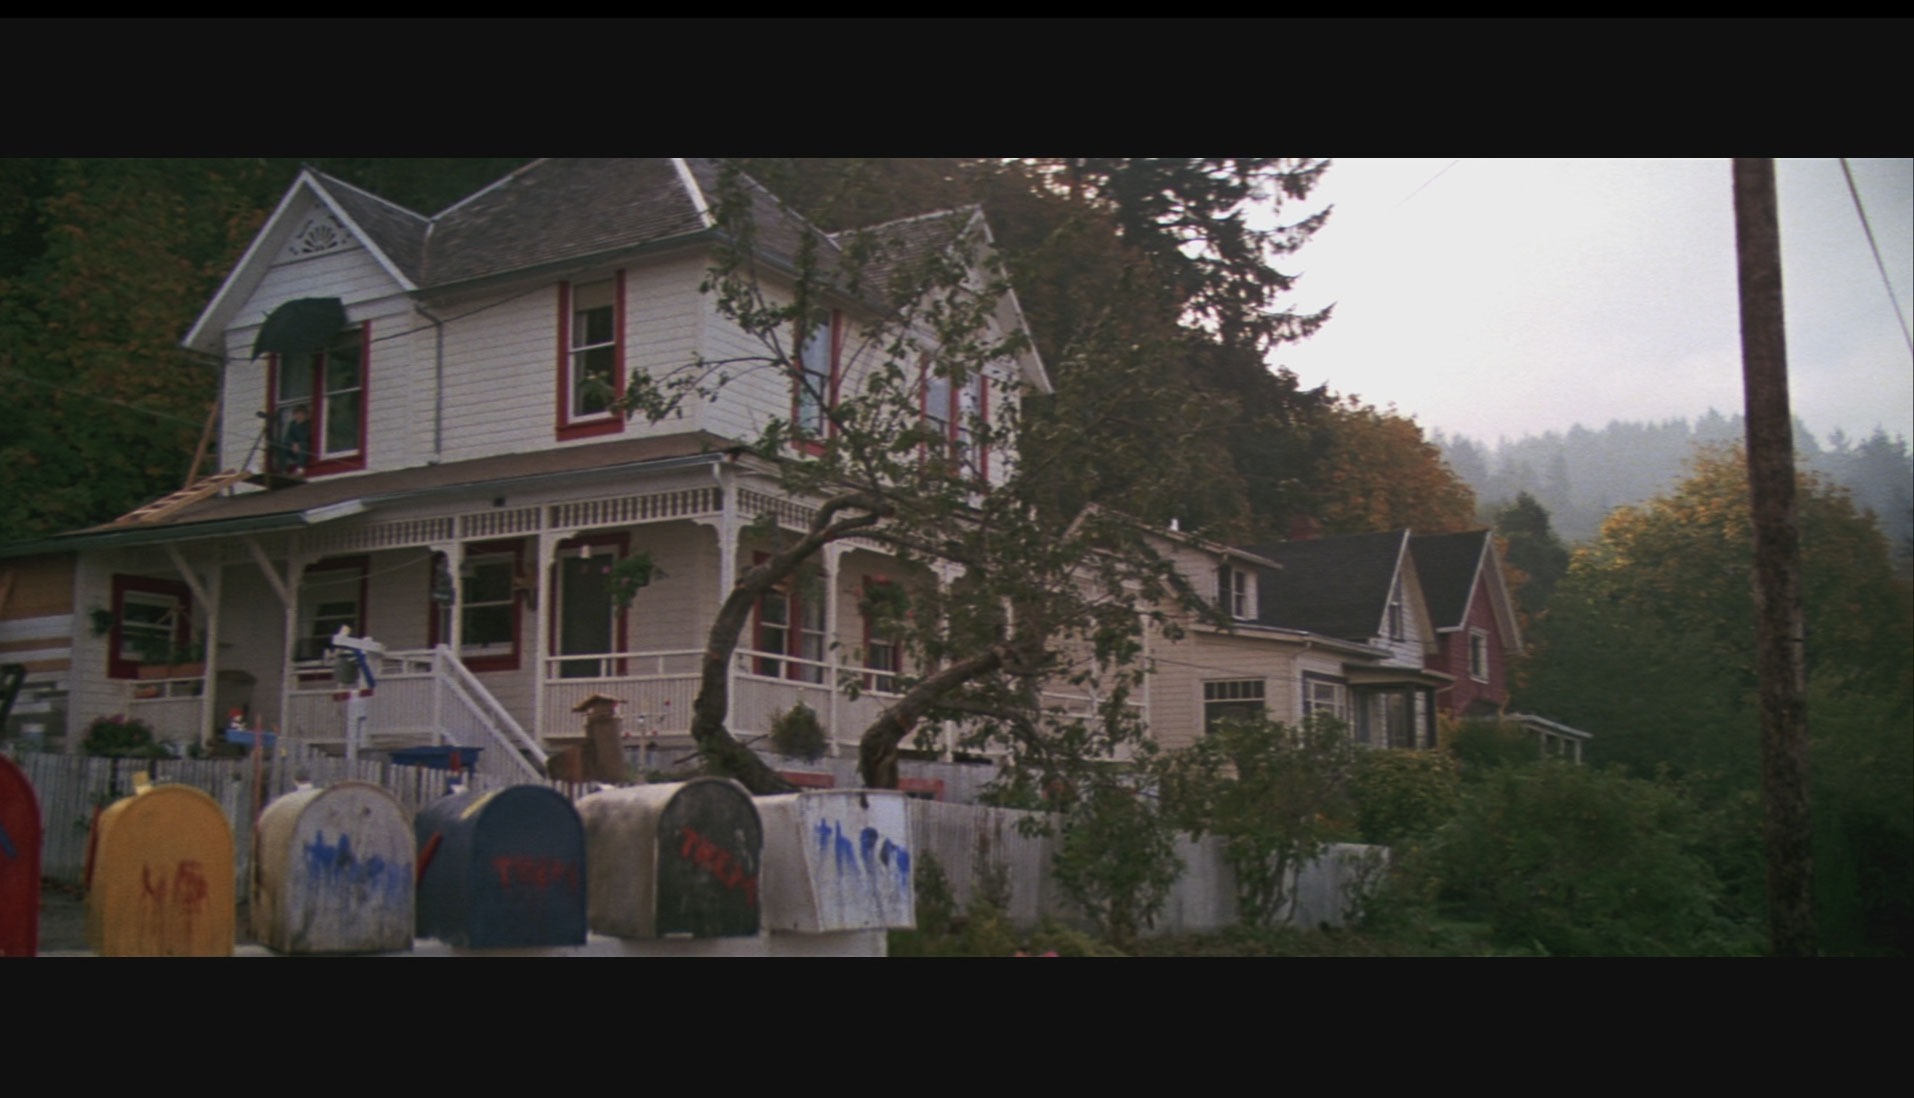 Goonies House in Astoria, Oregon - Film, Movie Screen Shot